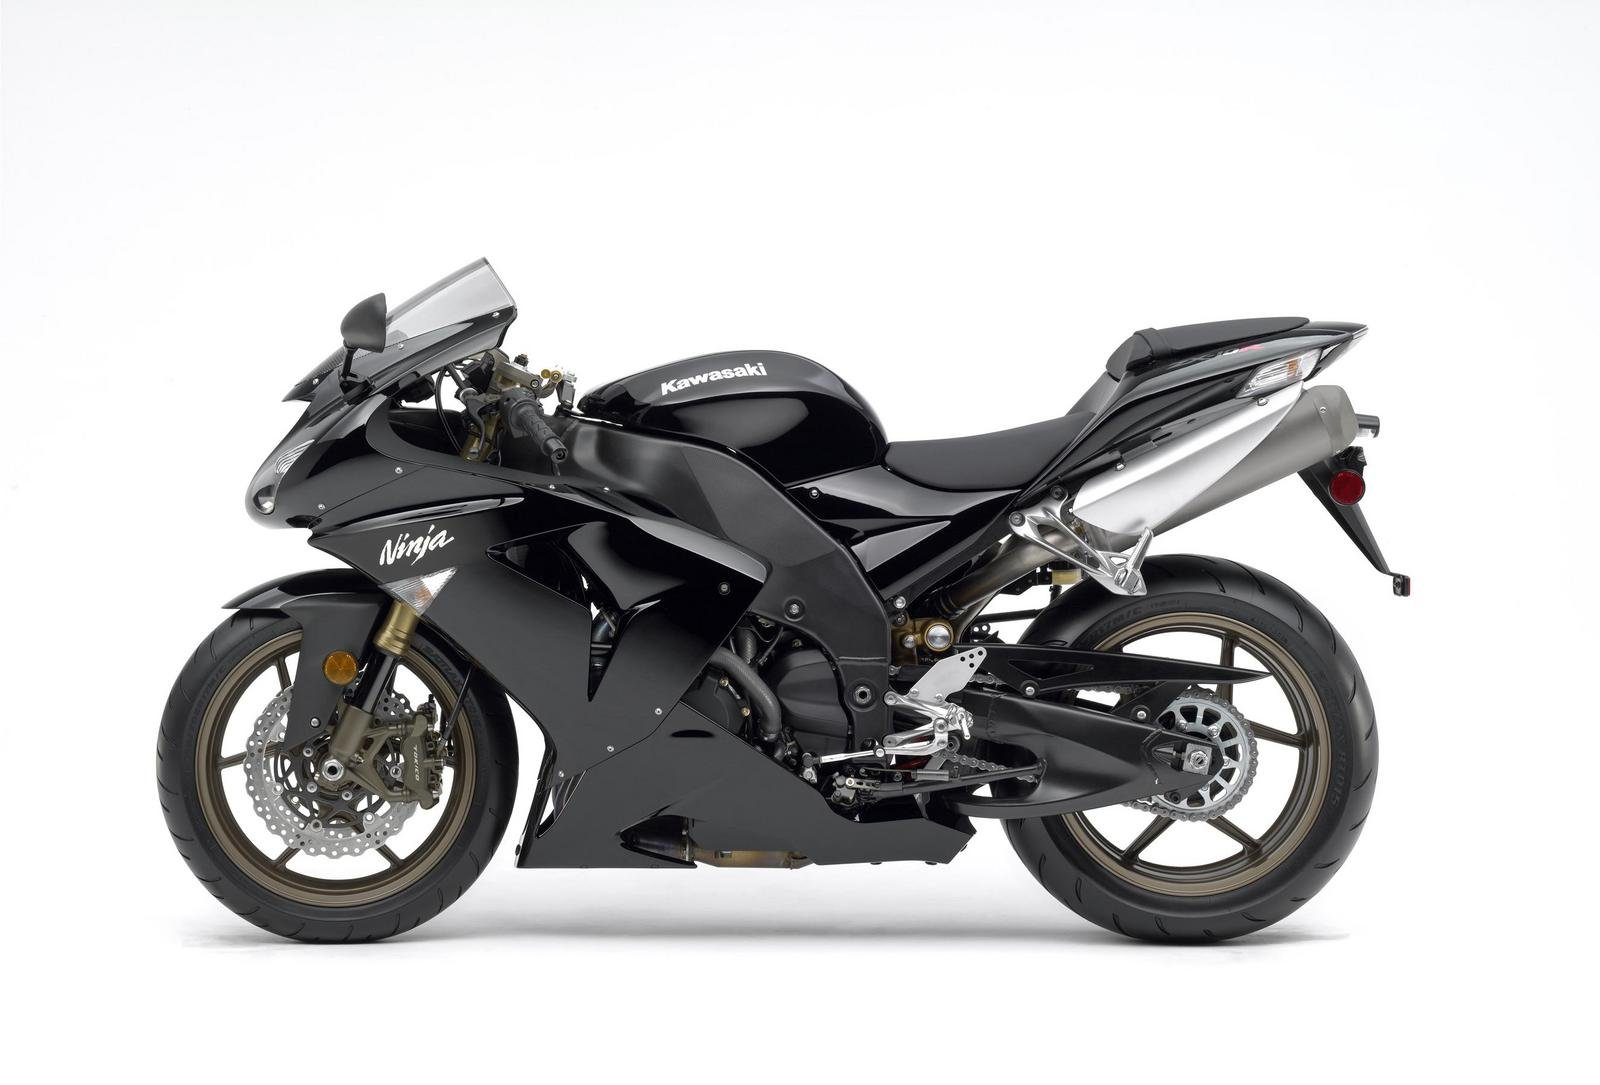 2006 kawasaki ninja zx 10r picture 84911 motorcycle. Black Bedroom Furniture Sets. Home Design Ideas